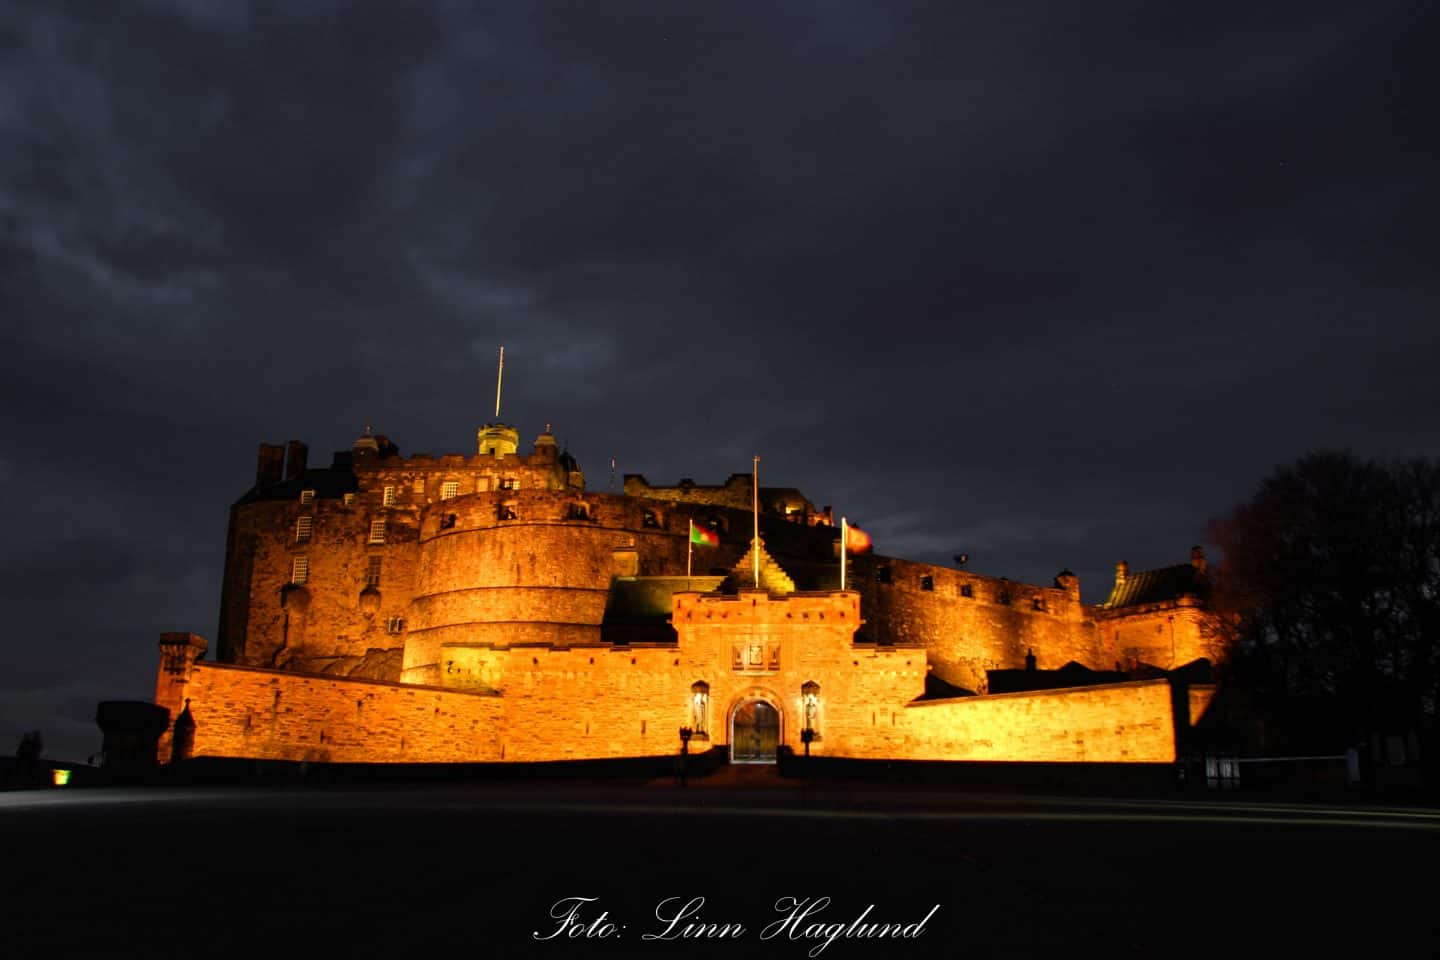 Edinburgh Castle lit up at night.